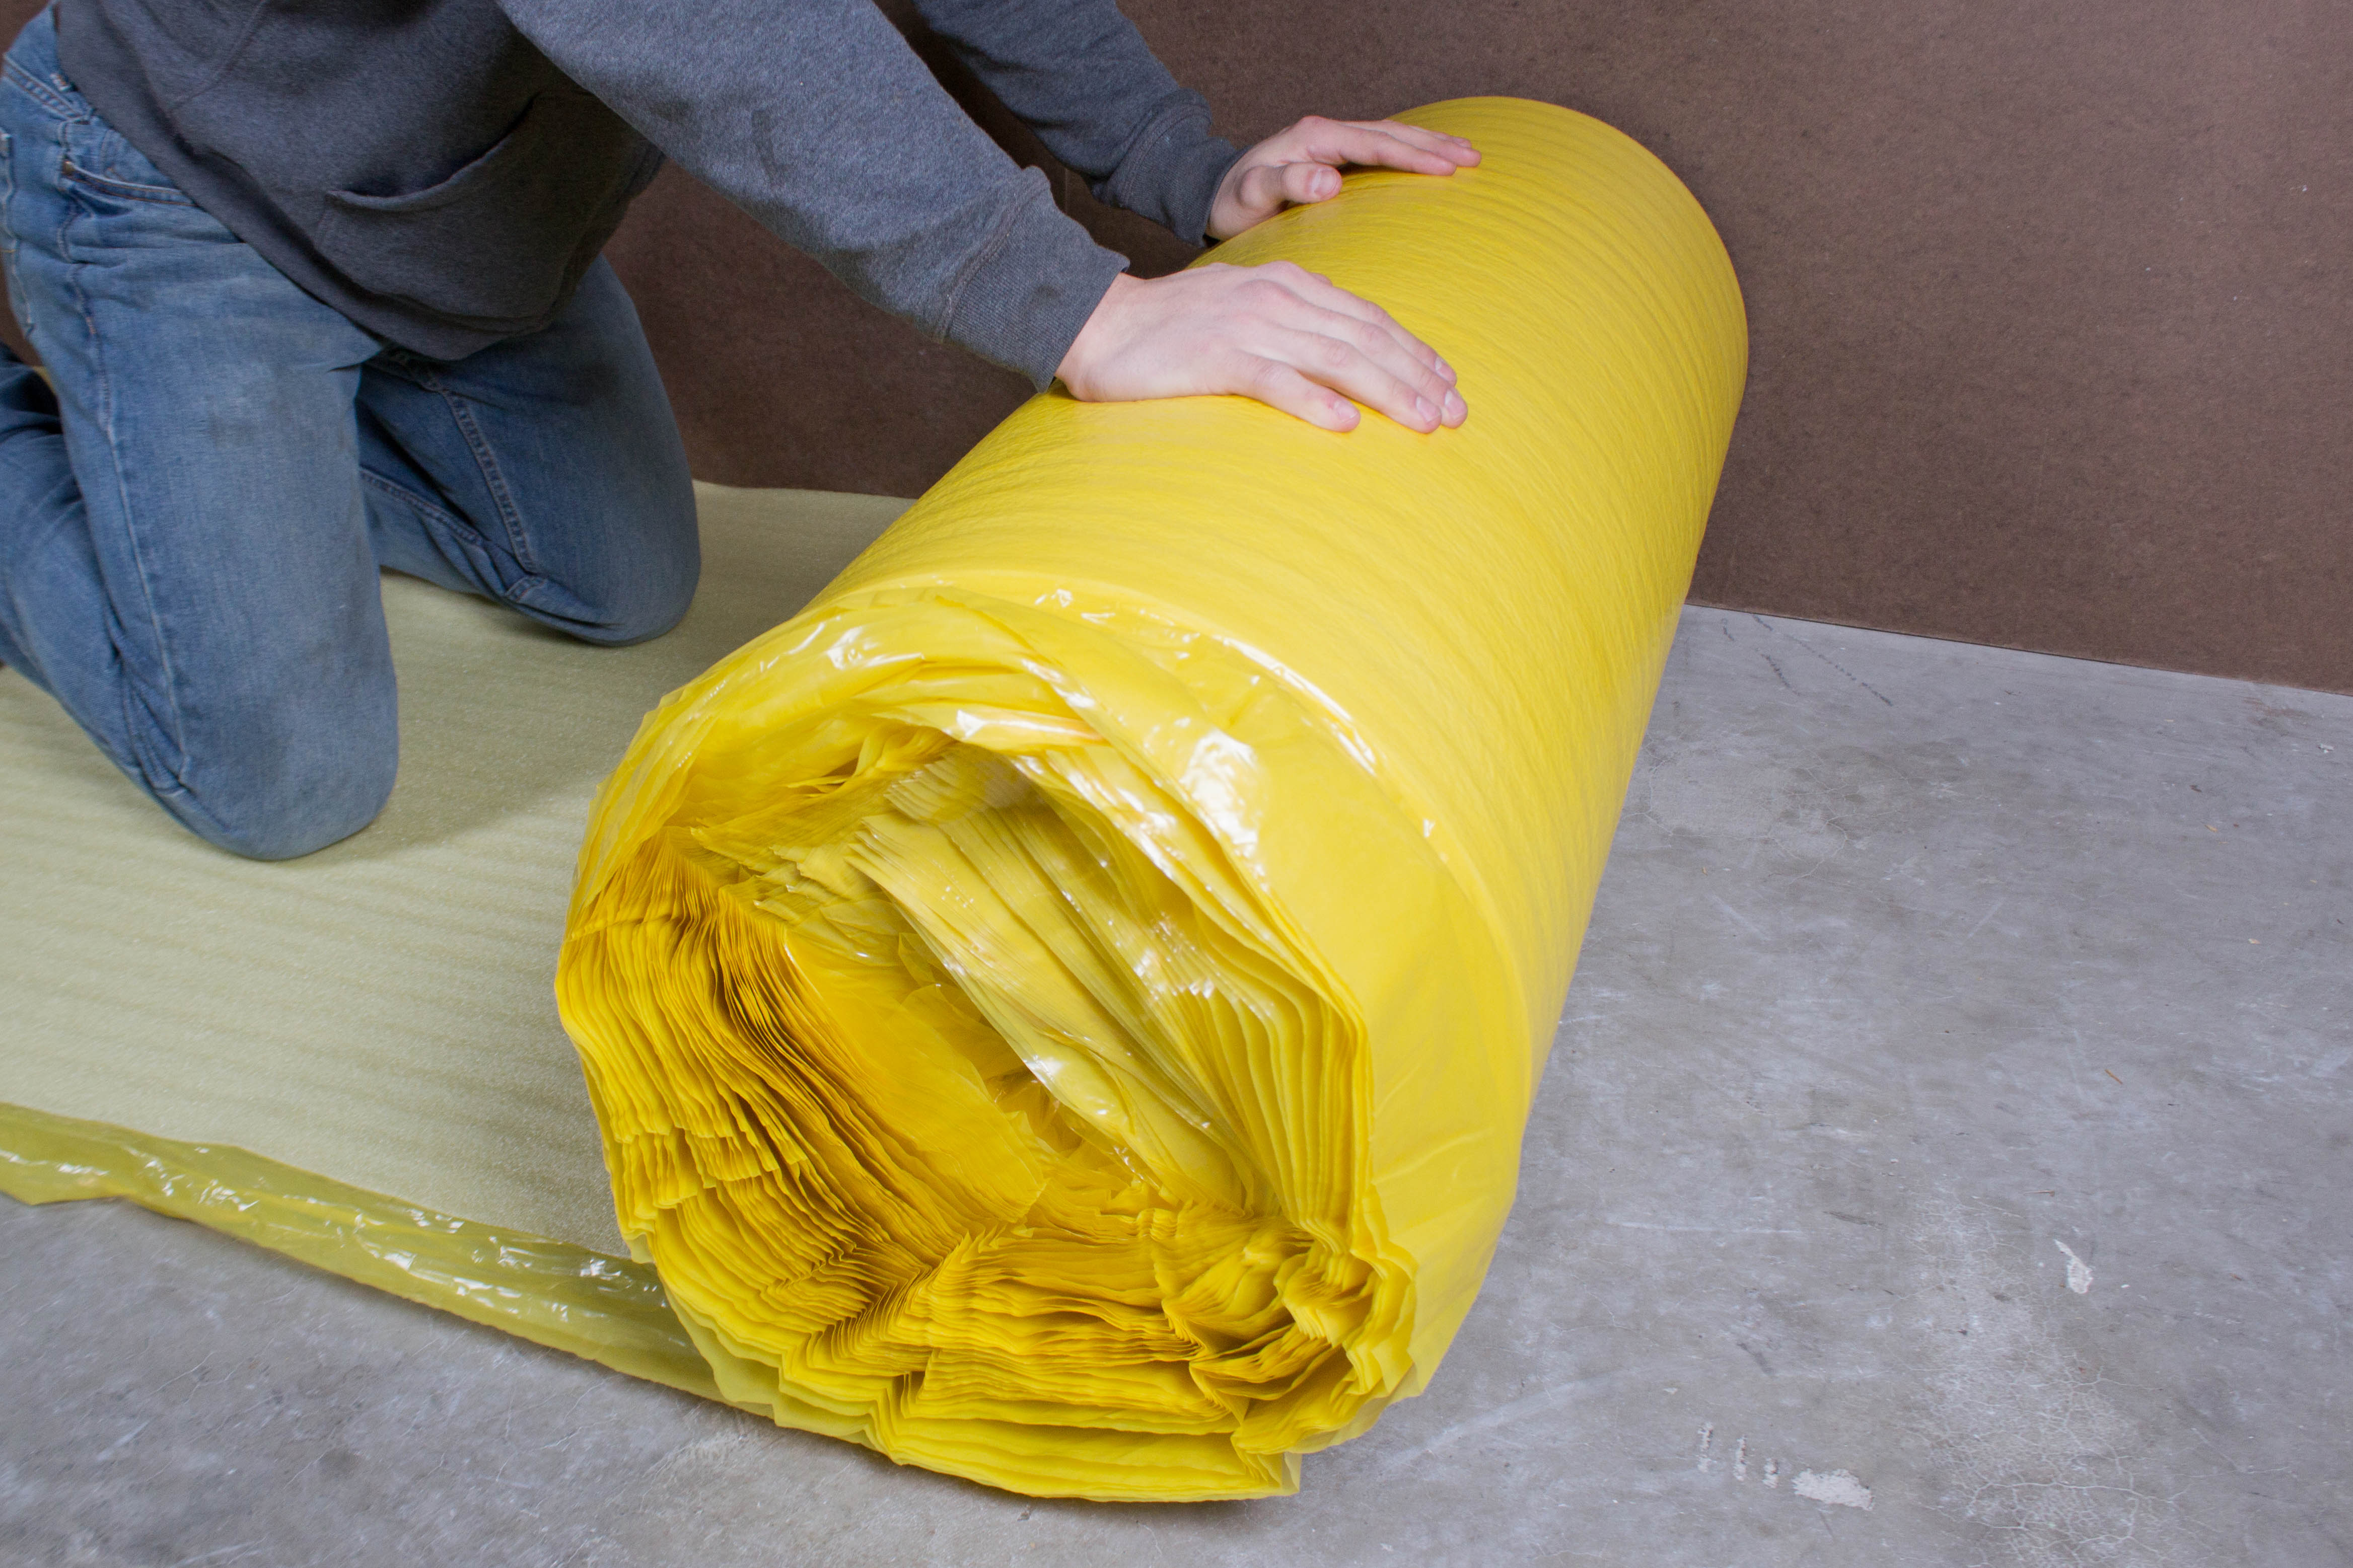 How To Install 2in1 Vapor Barrier Underlayment: Unroll the first row